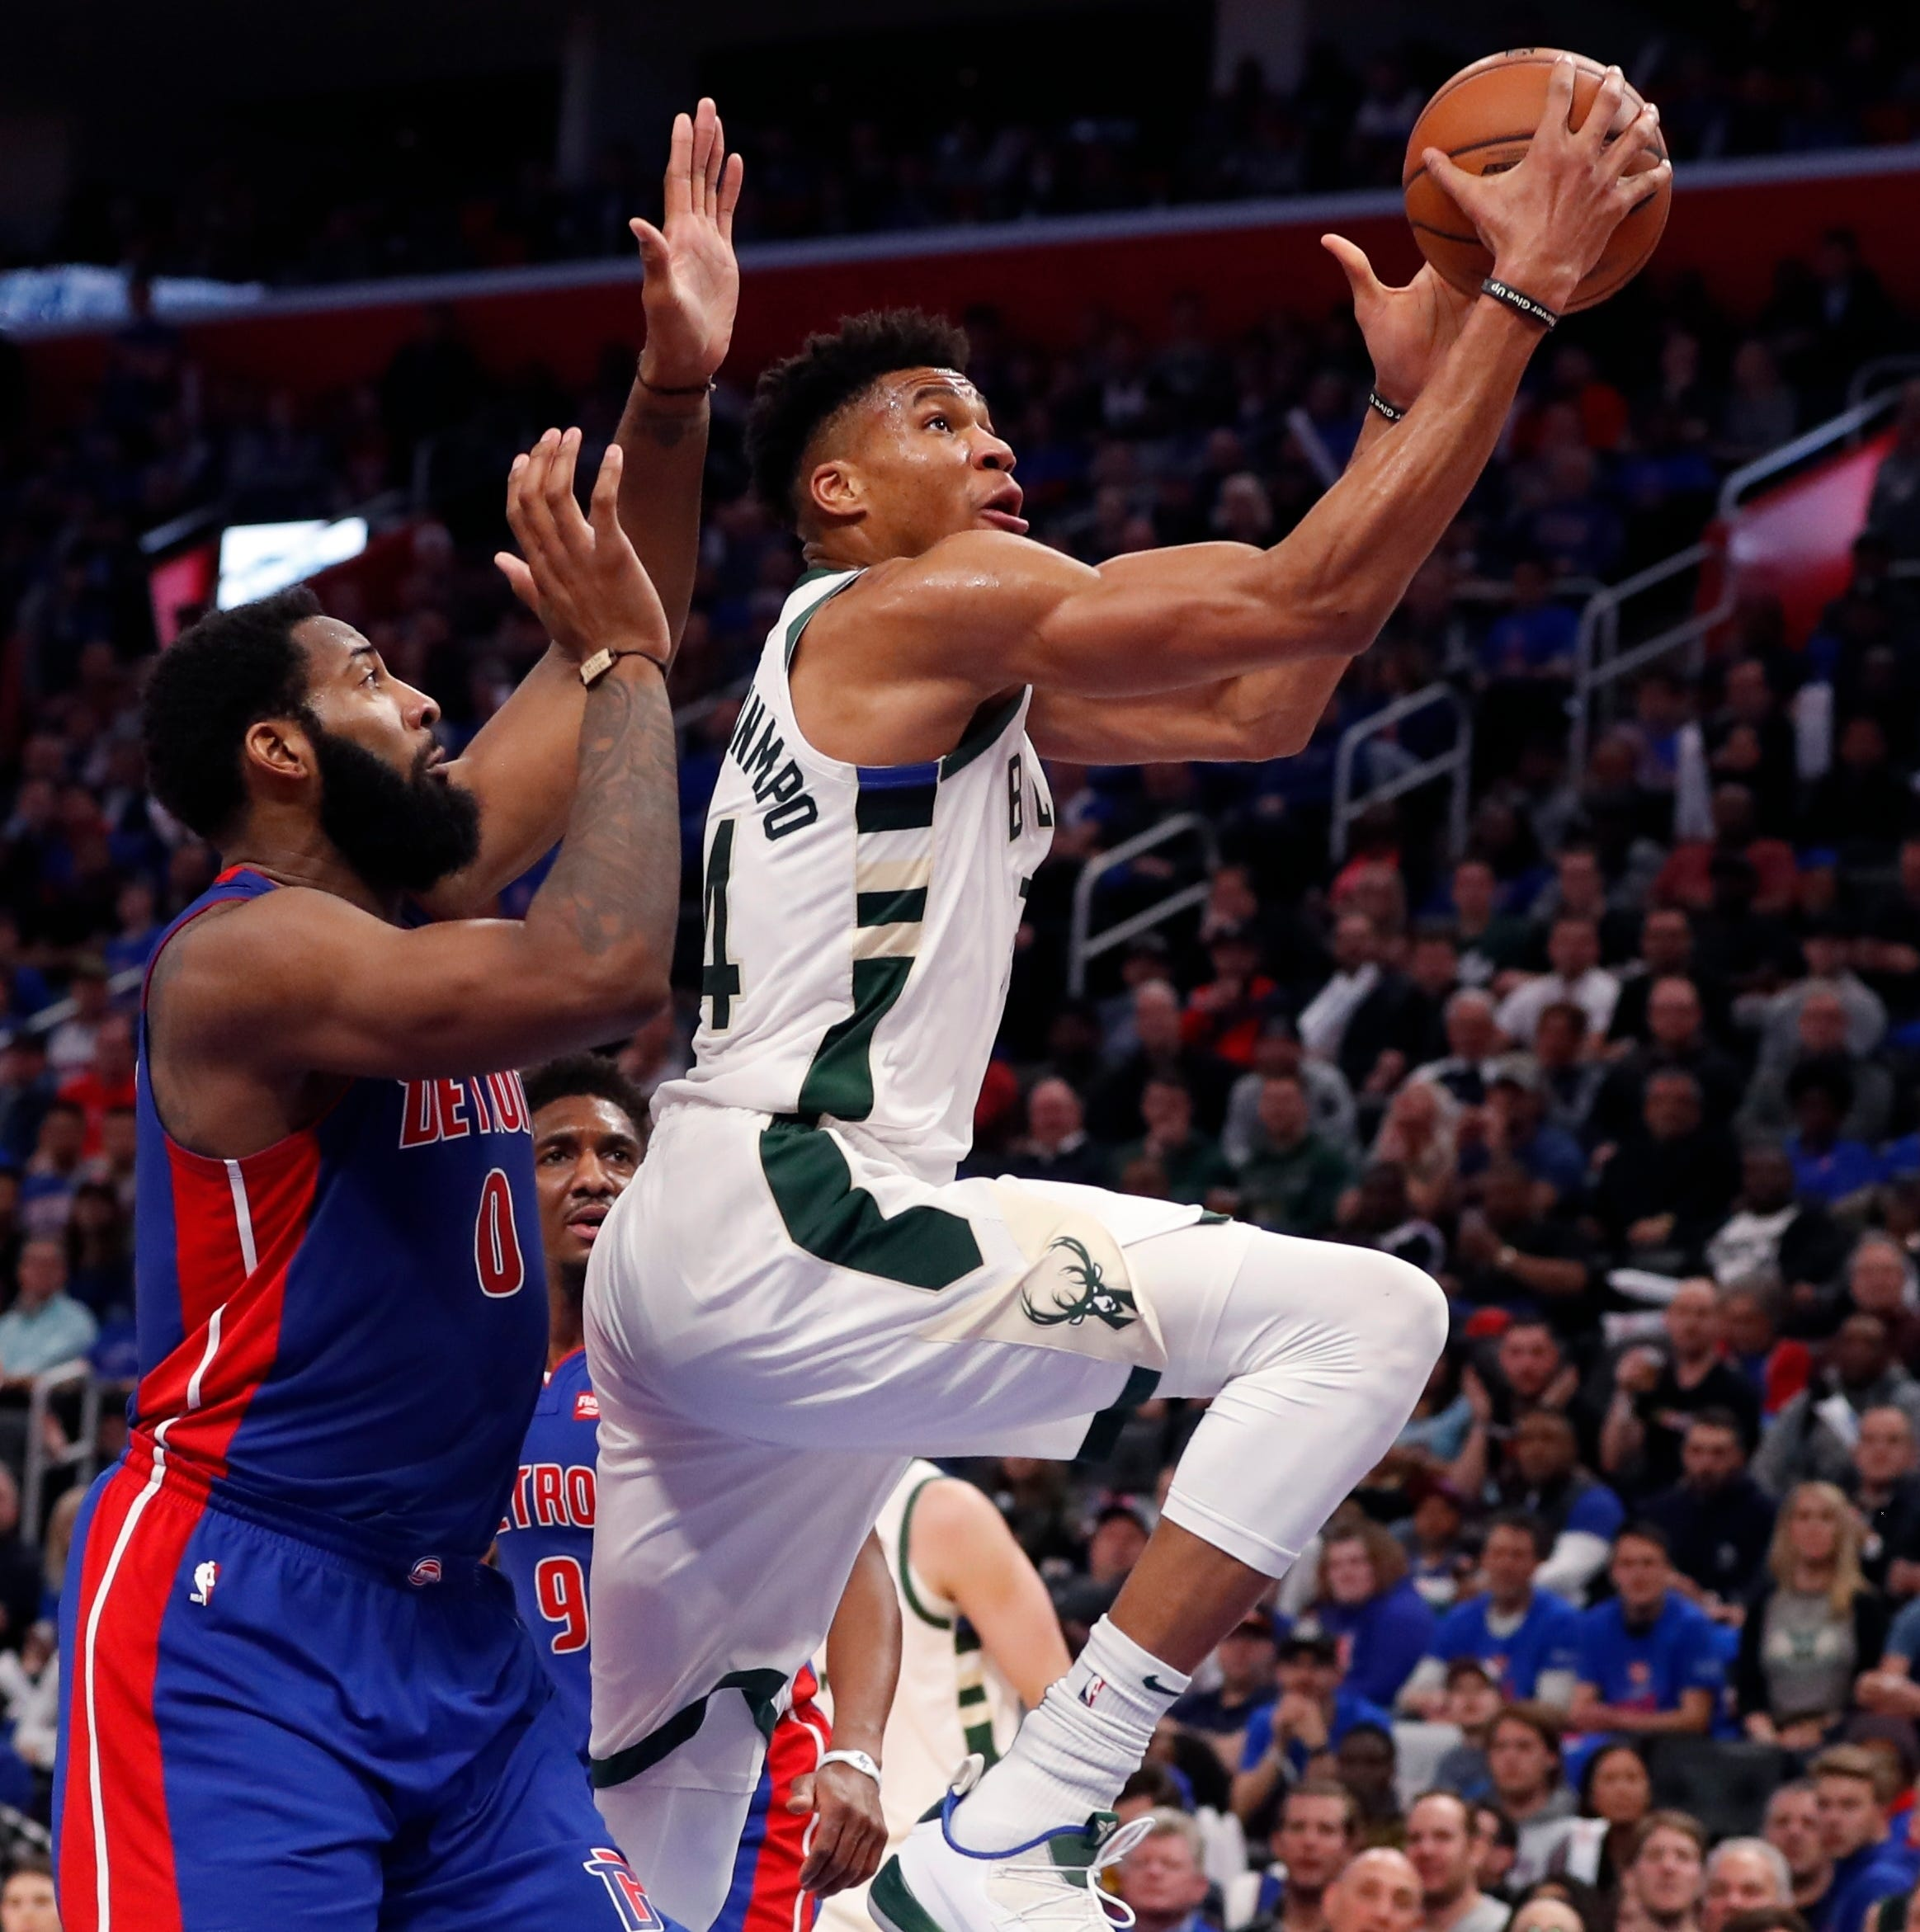 Bucks 119, Pistons 103: On the verge of a sweep in first round